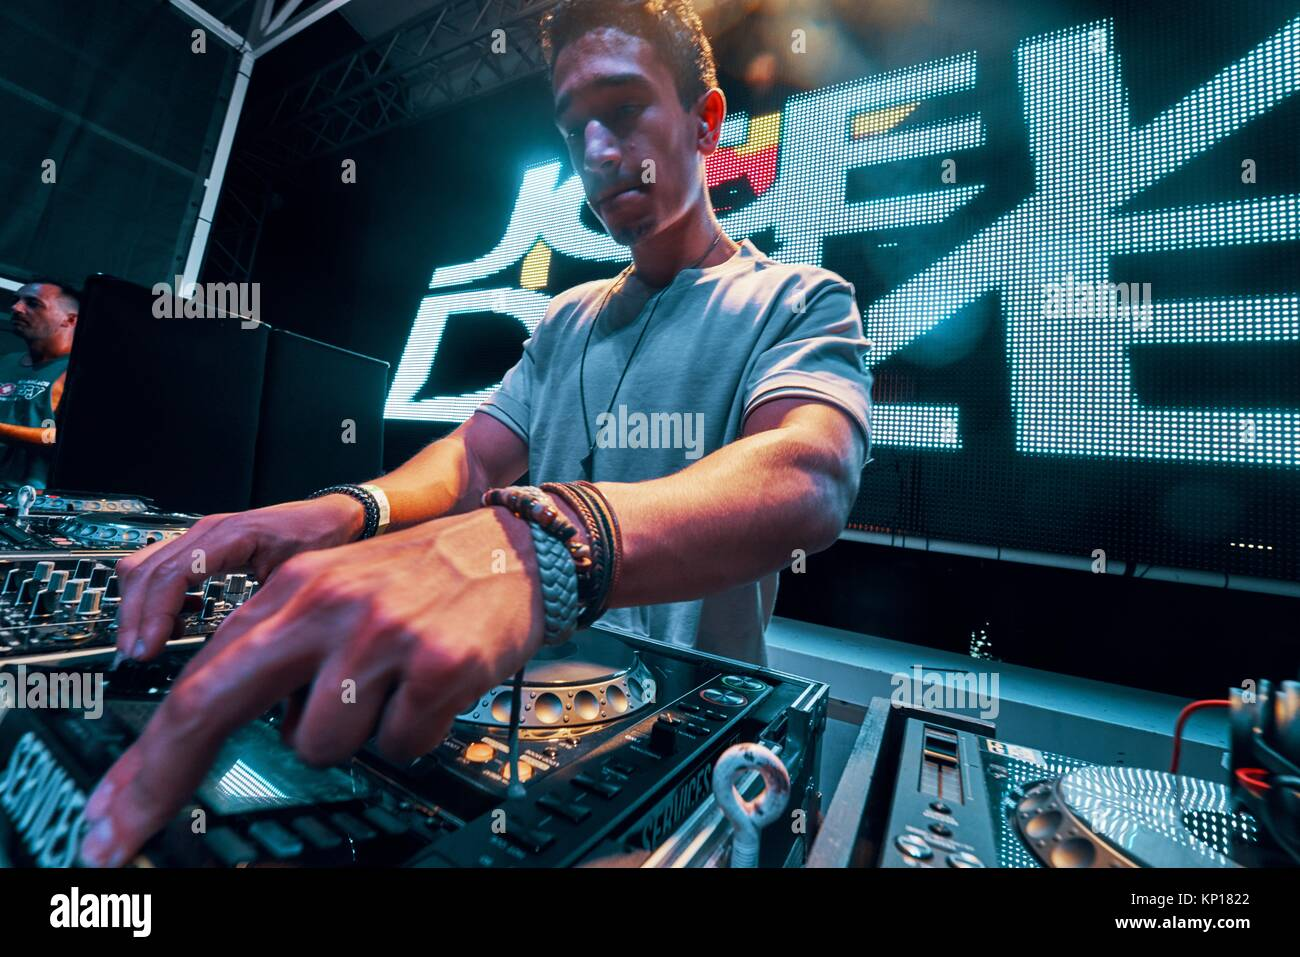 DJ Joey Dale at music festival Starbeach in Hersonissos, Crete, Greece, on 25. August 2017 - Stock Image